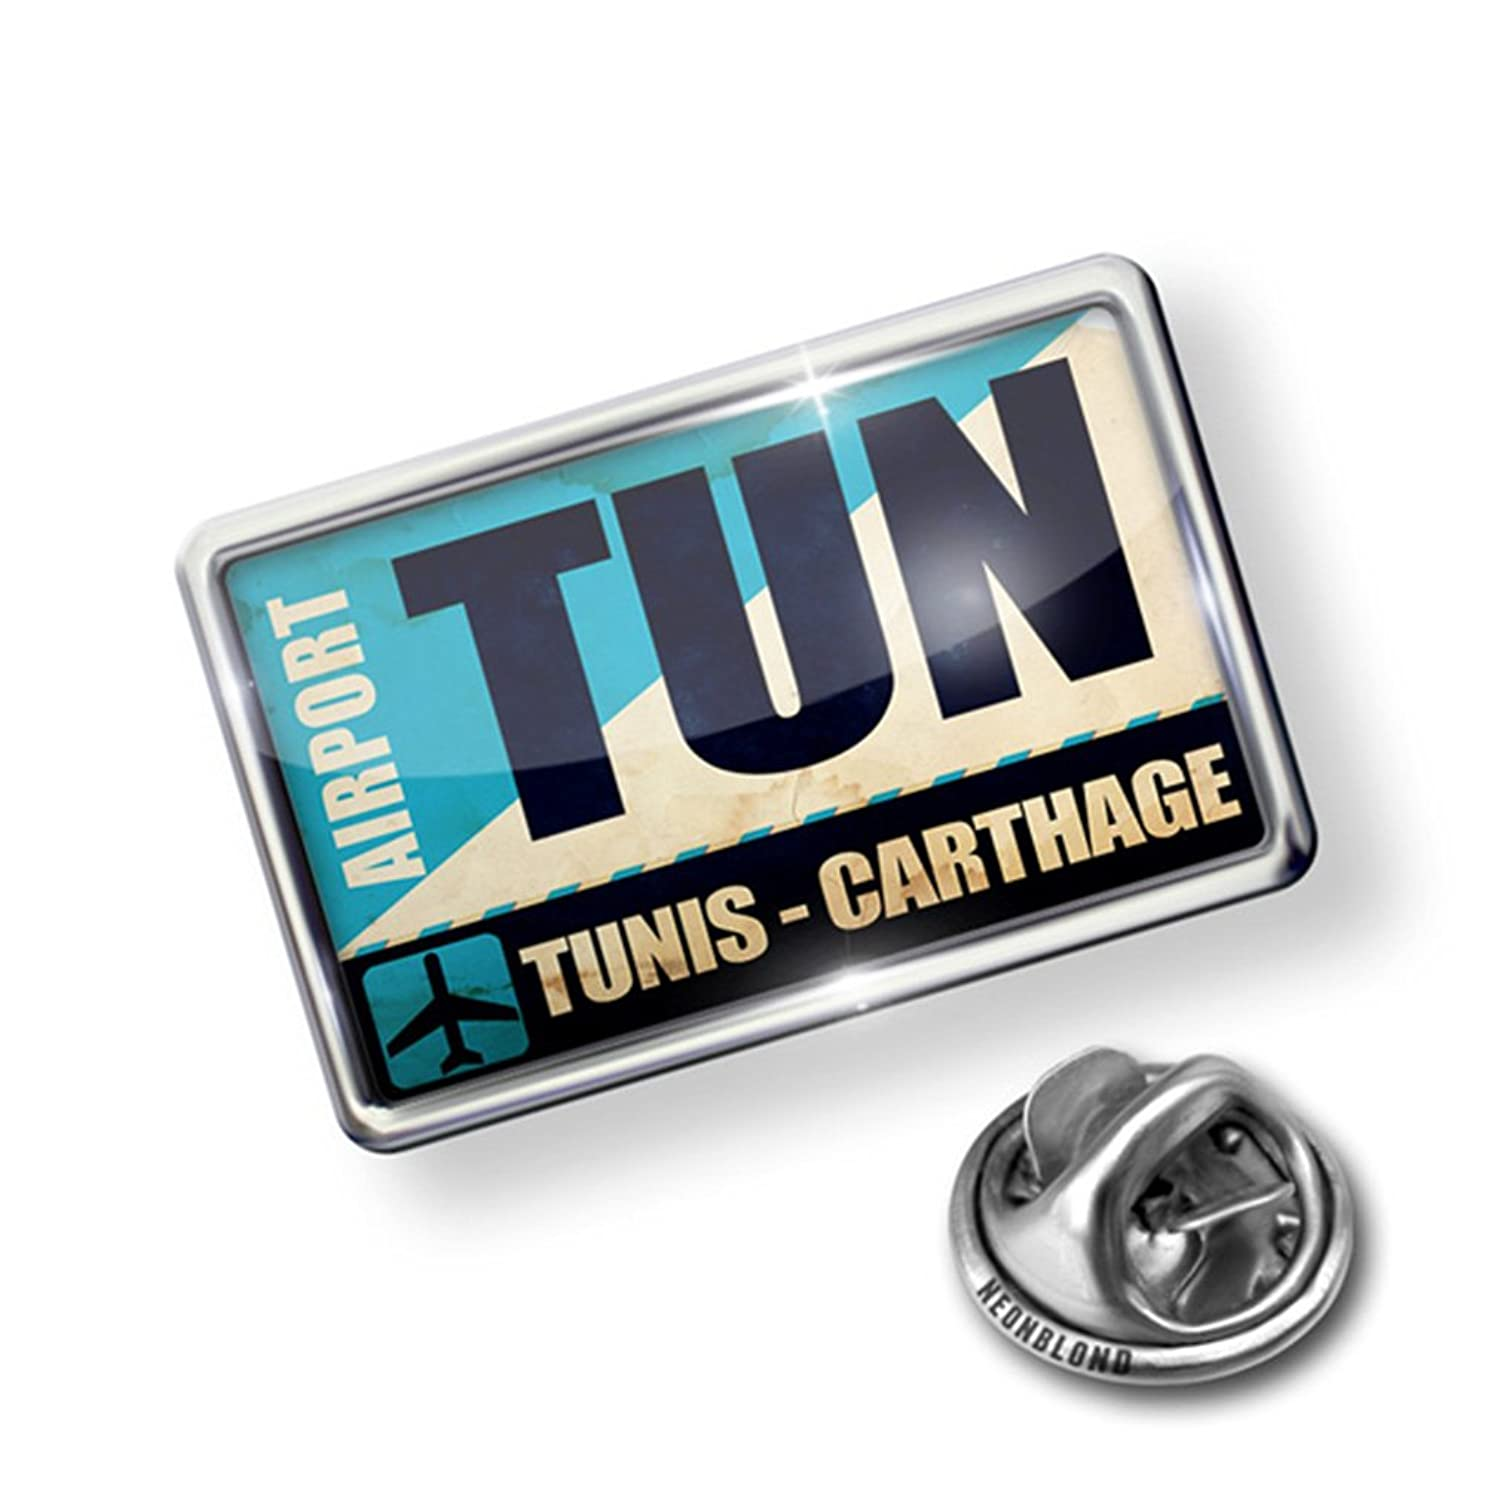 Pin Airportcode TUN Tunis - Carthage - Lapel Badge - NEONBLOND